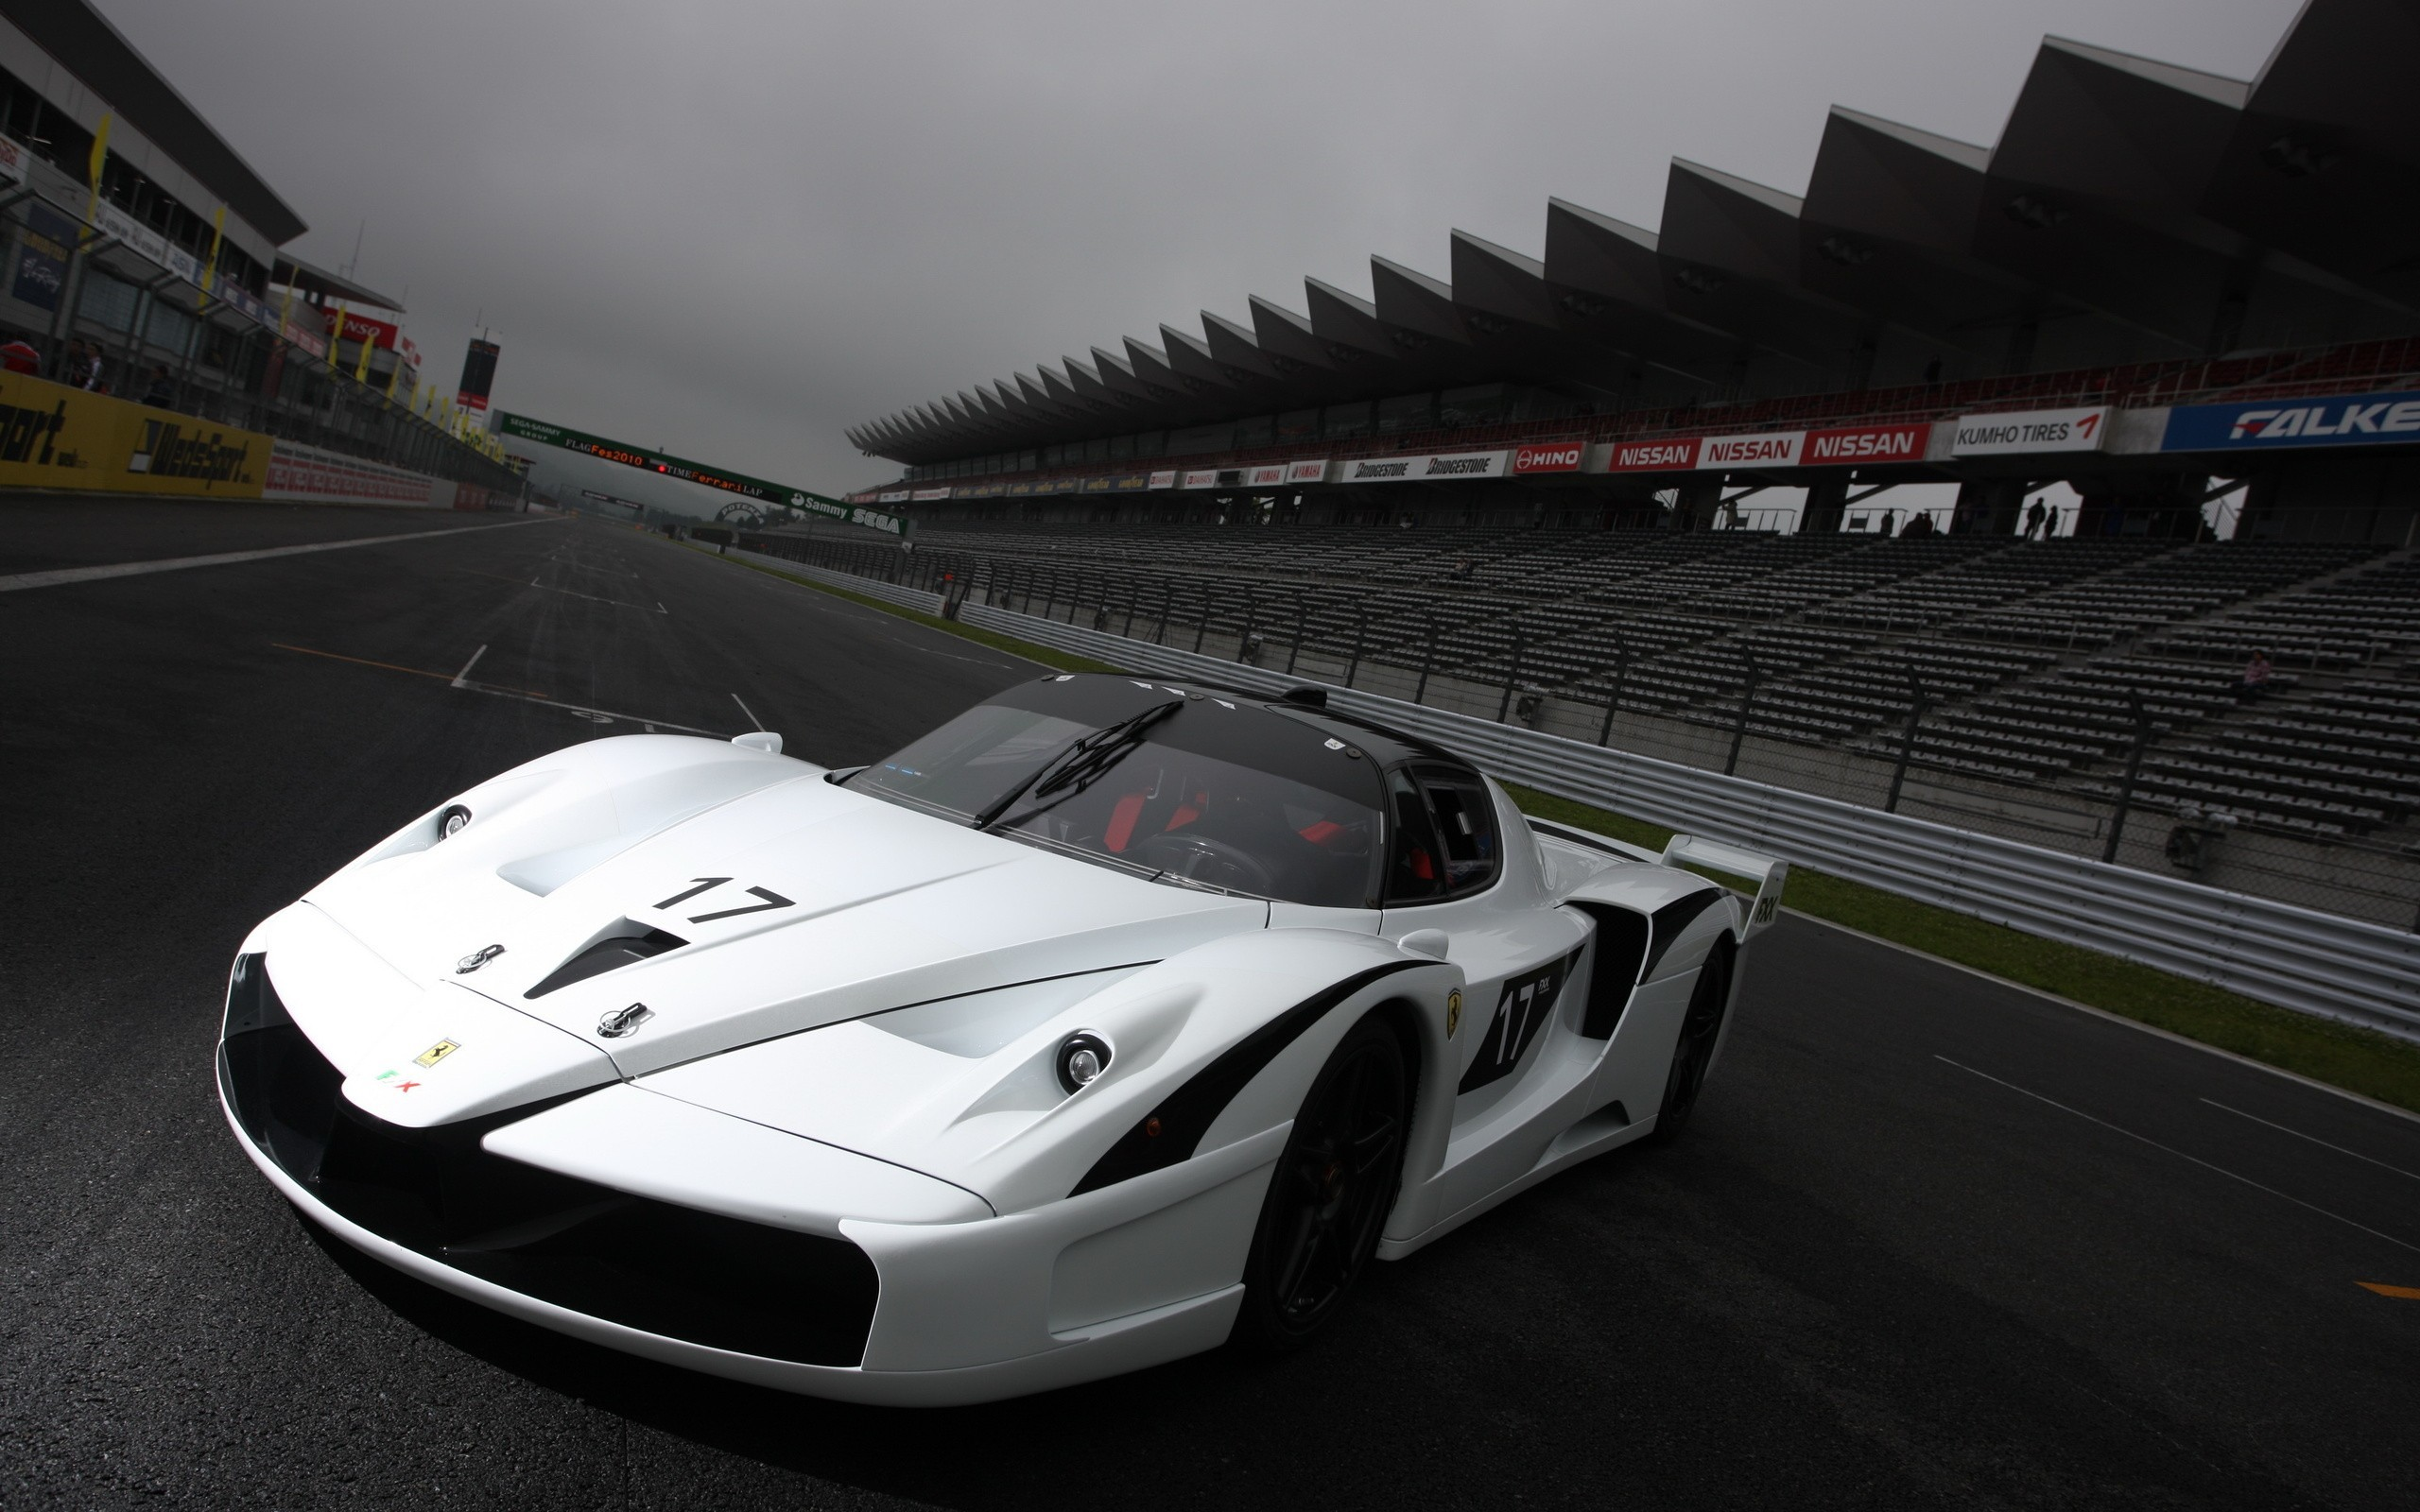 2560x1600 Enzo Race car. Ferrari on wallpapers ...